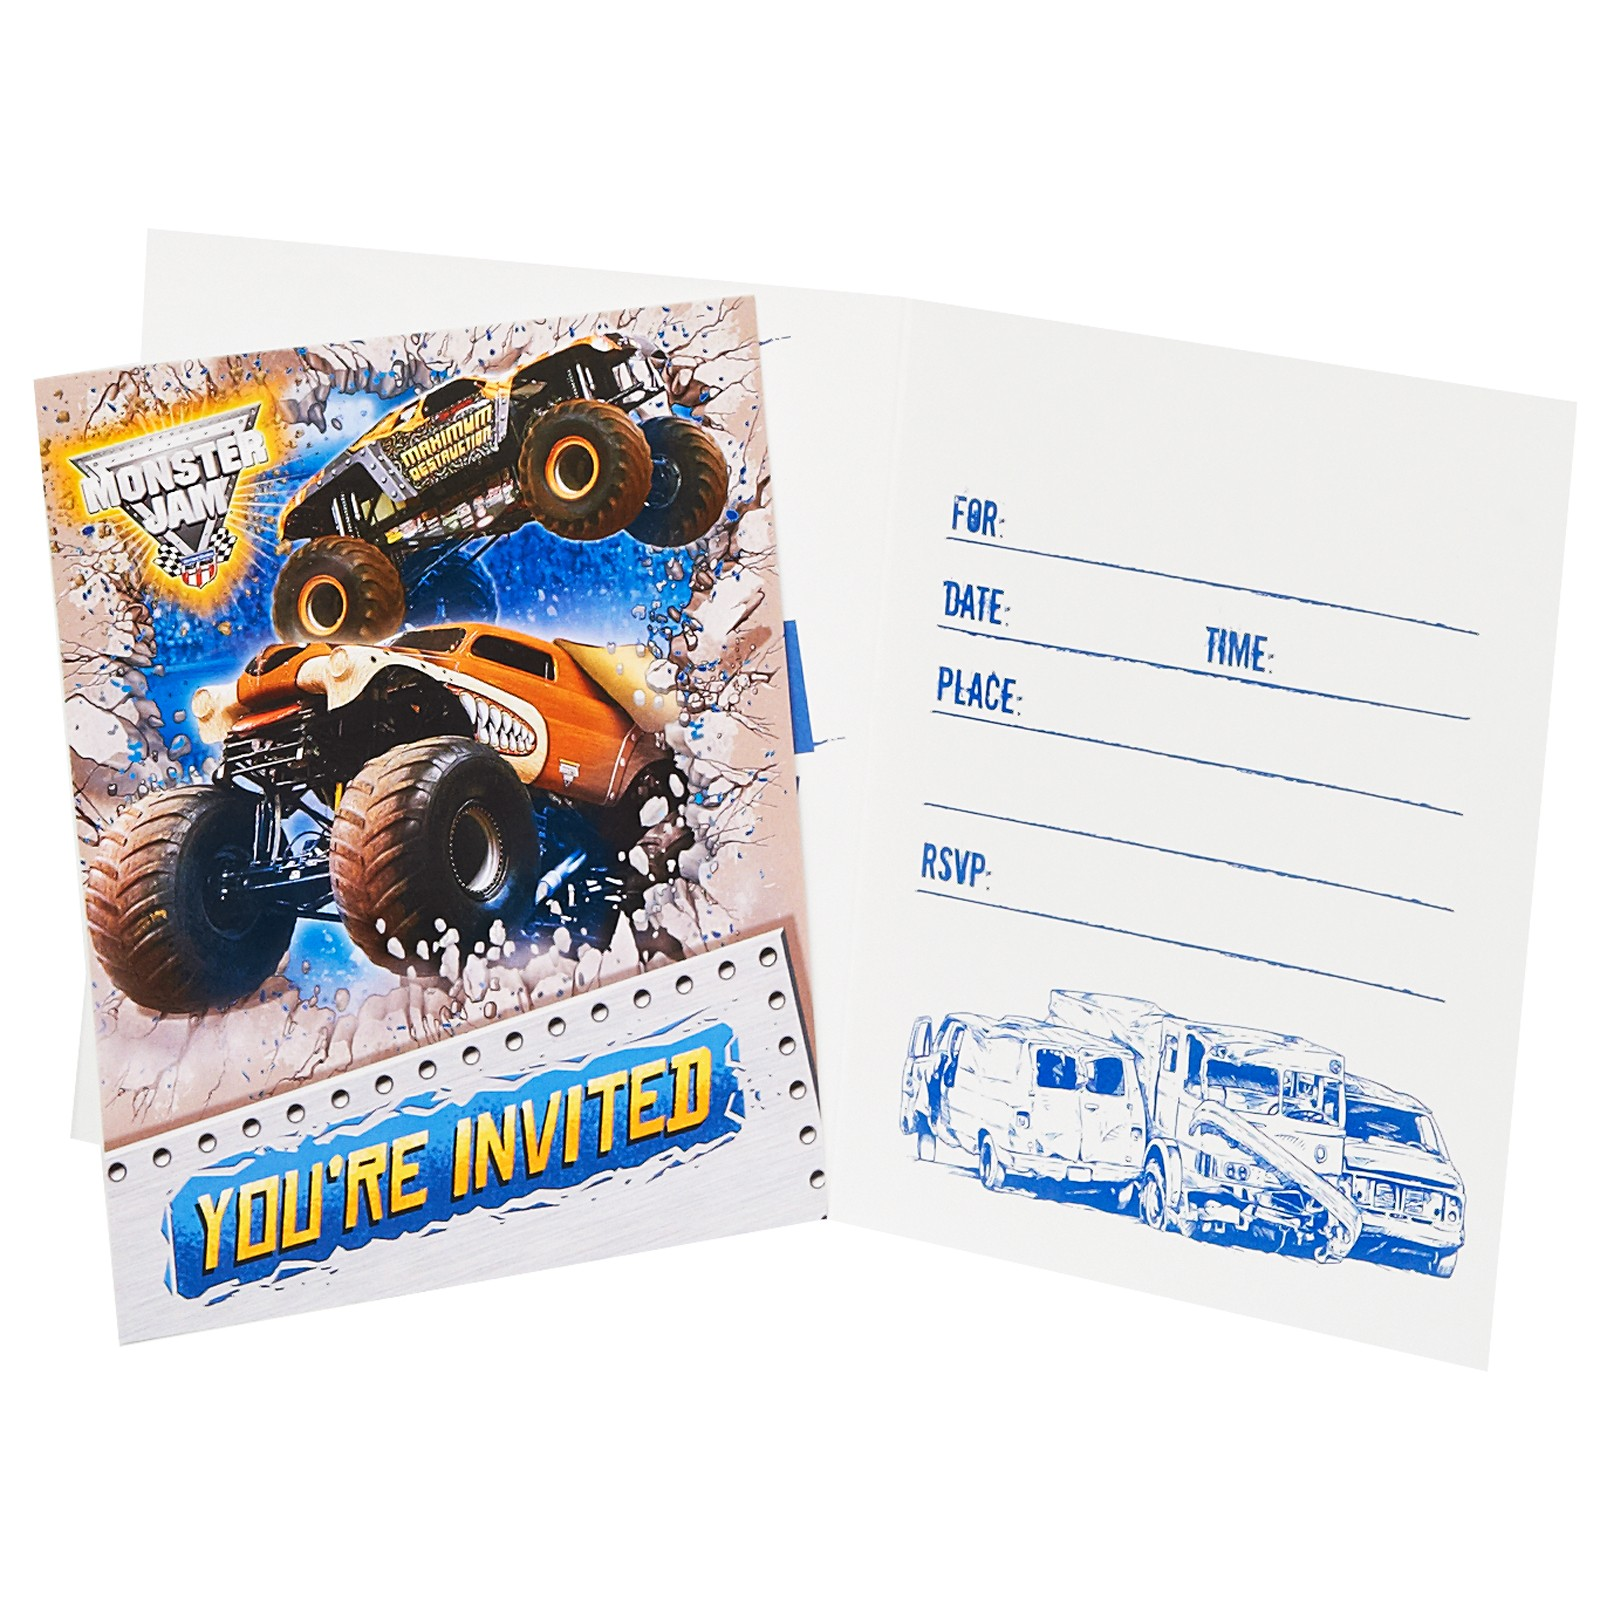 Monster Jam Birthday Invitations was very inspiring ideas you may choose for invitation ideas